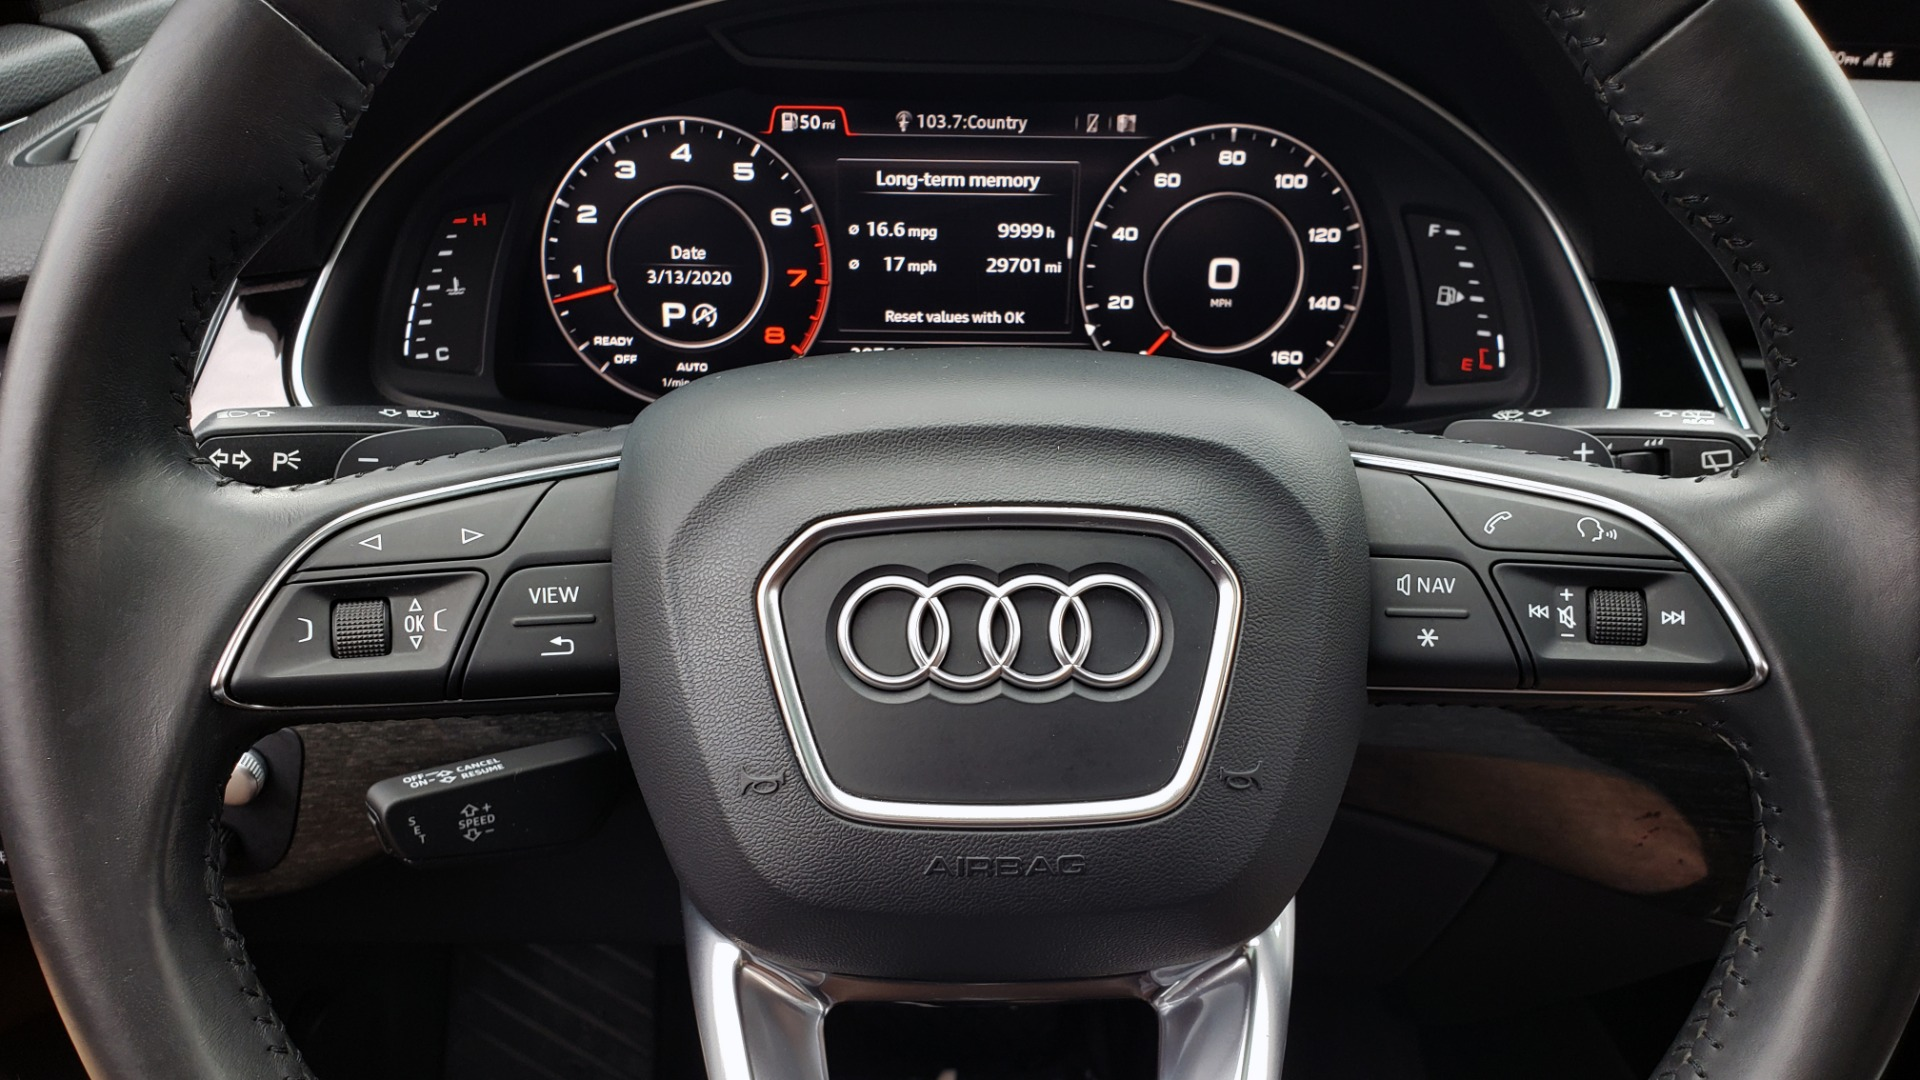 Used 2017 Audi Q7 PRESTIGE 3.0T / AWD / NAV / PANO-ROOF / HTD STS / BOSE / VISION for sale Sold at Formula Imports in Charlotte NC 28227 47